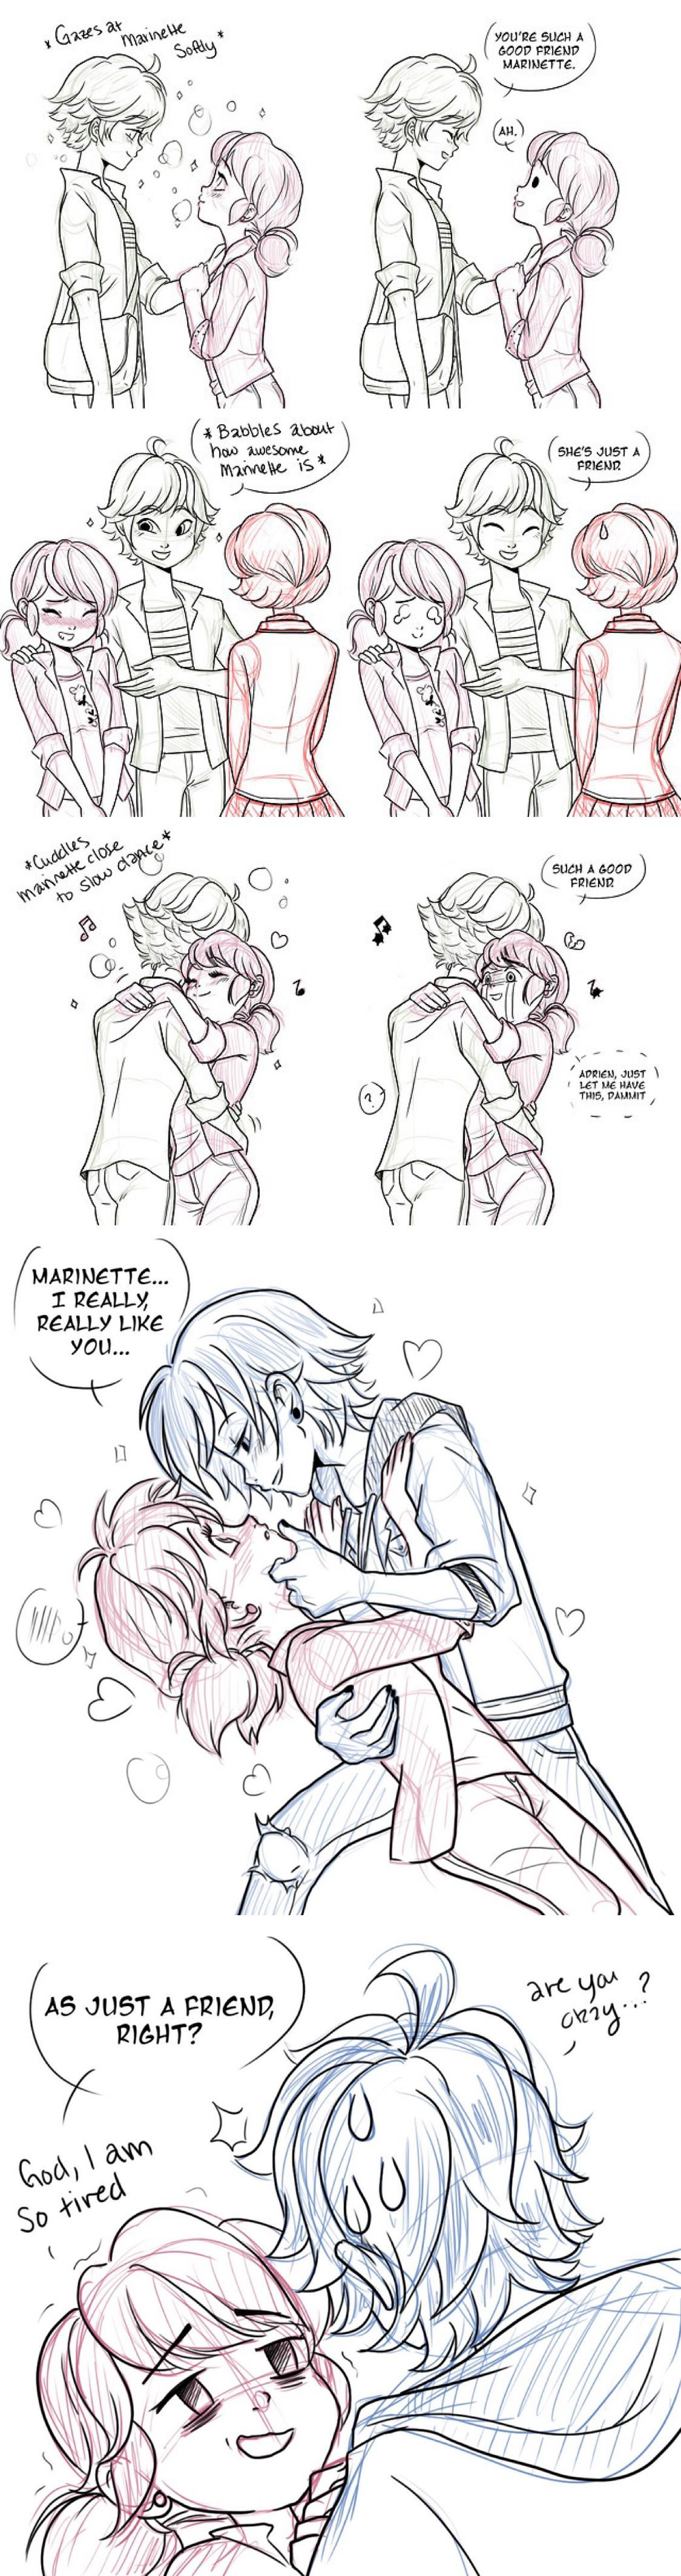 Z O E The Toll Of Constantly Getting Mixed Signals Is Miraculous Ladybug Comic Miraculous Ladybug Memes Miraculous Ladybug Funny